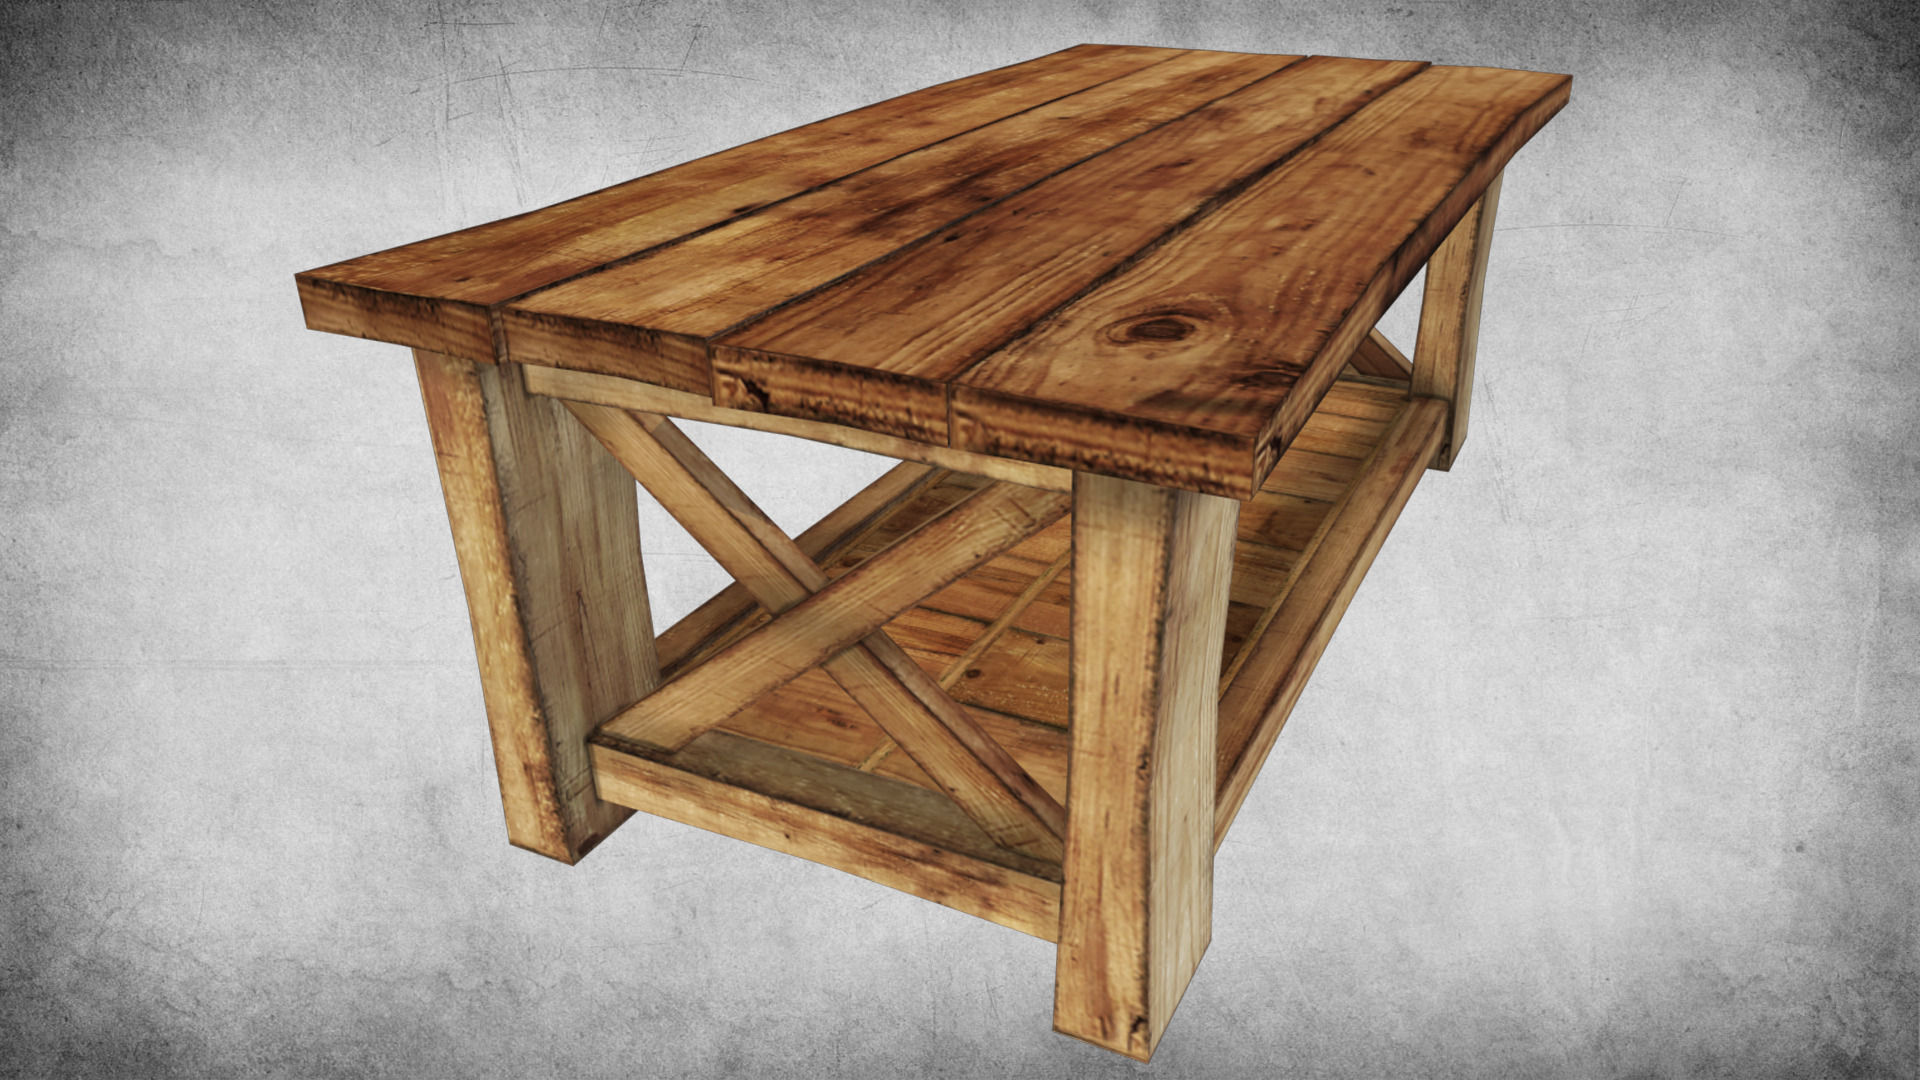 3d model rustic wood table 02 vr ar low poly max obj for Table 3d model